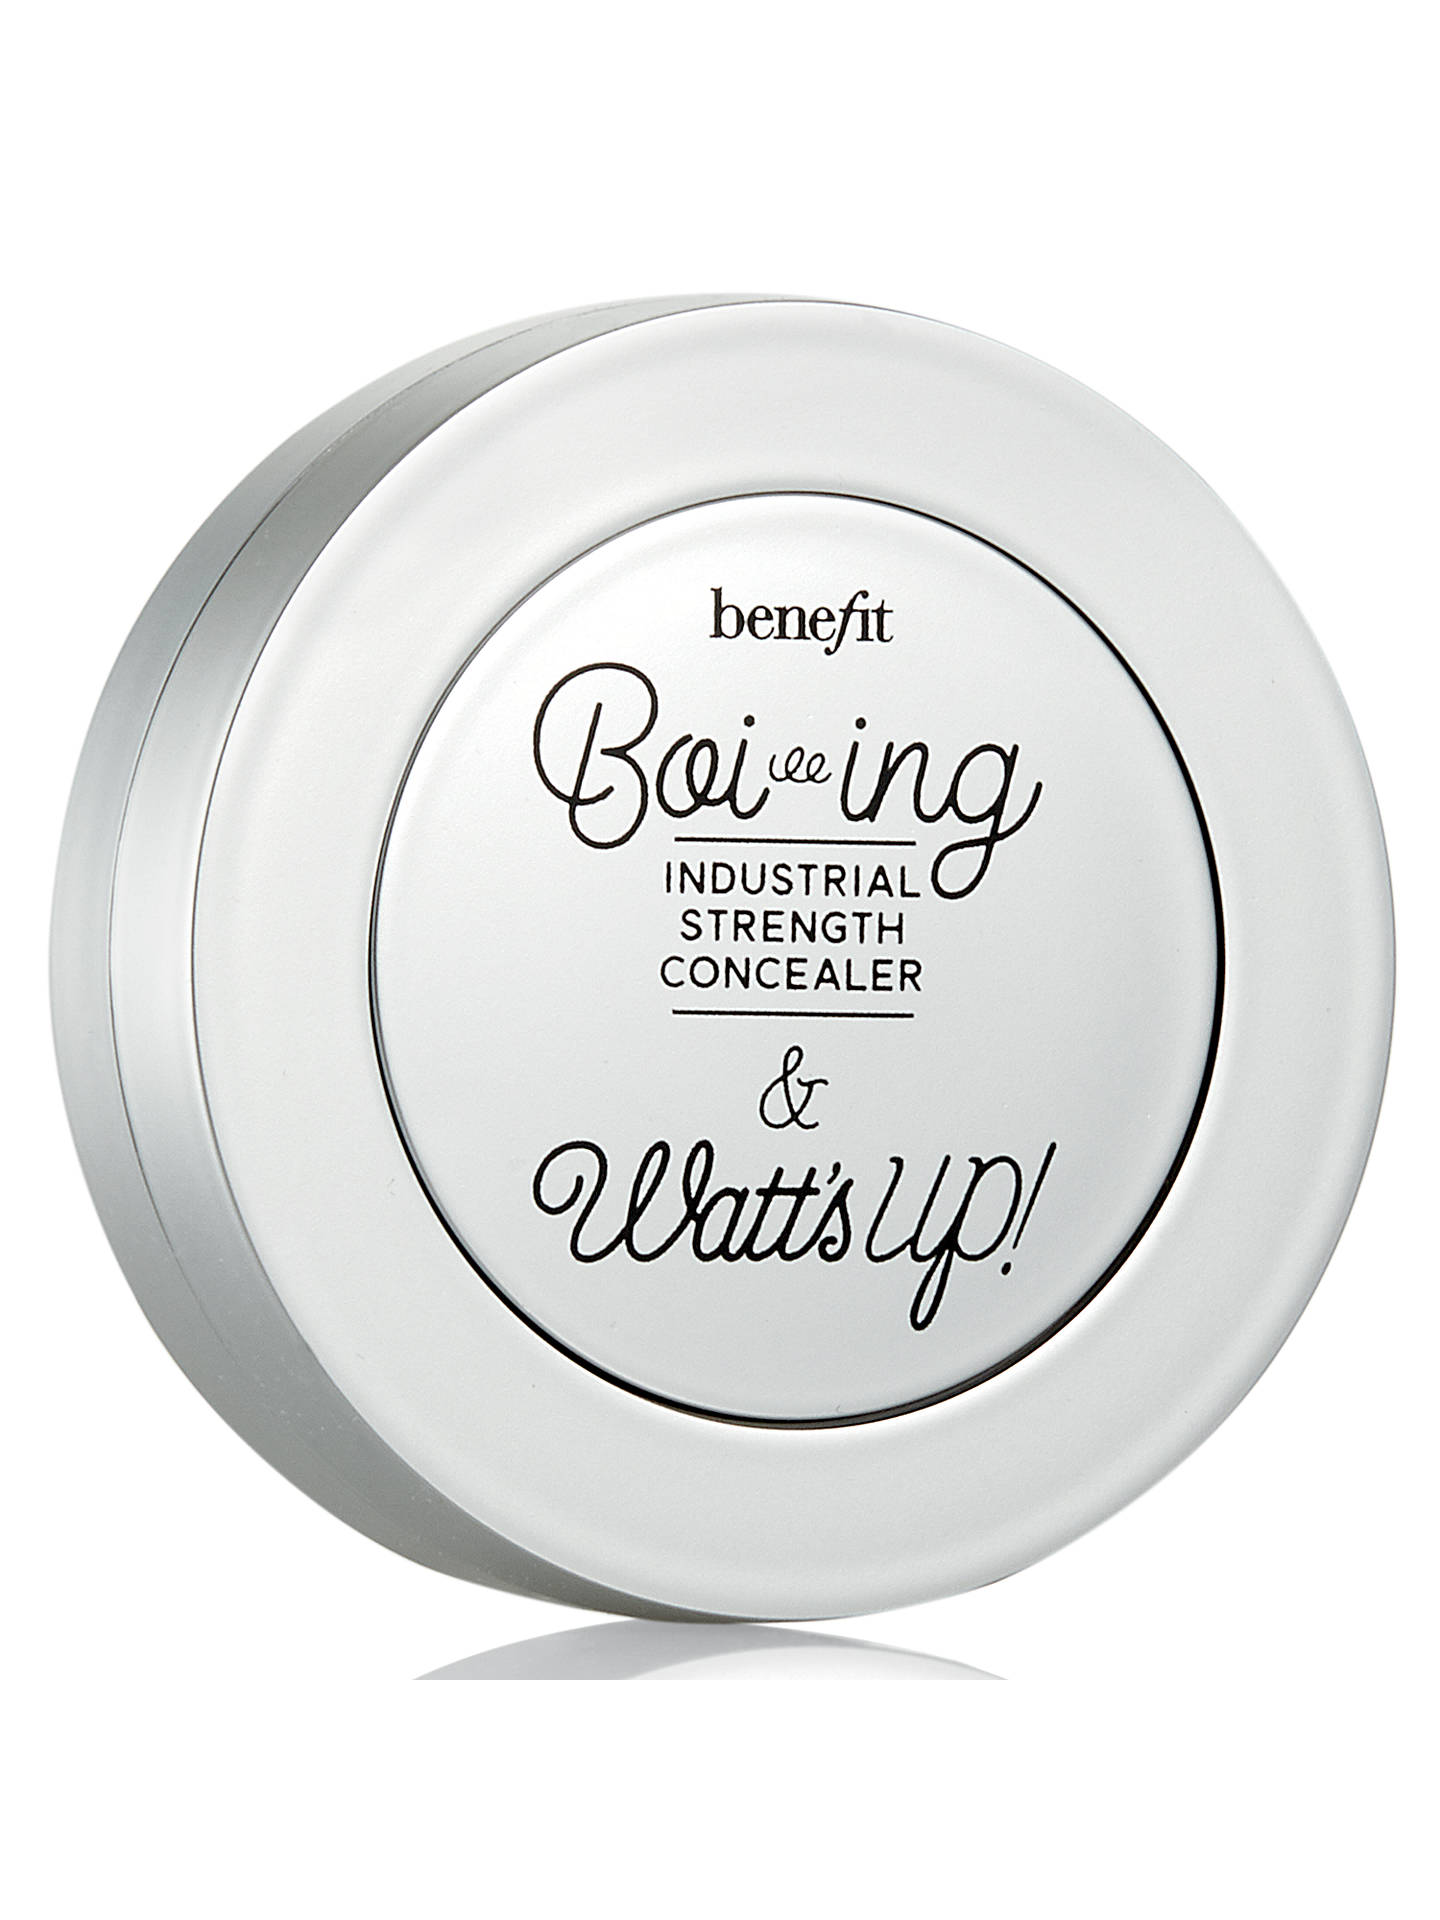 BuyBenefit Boi-ing Industrial-Strength Concealer 01 & Watt's Up Soft Focus Highlighter Online at johnlewis.com